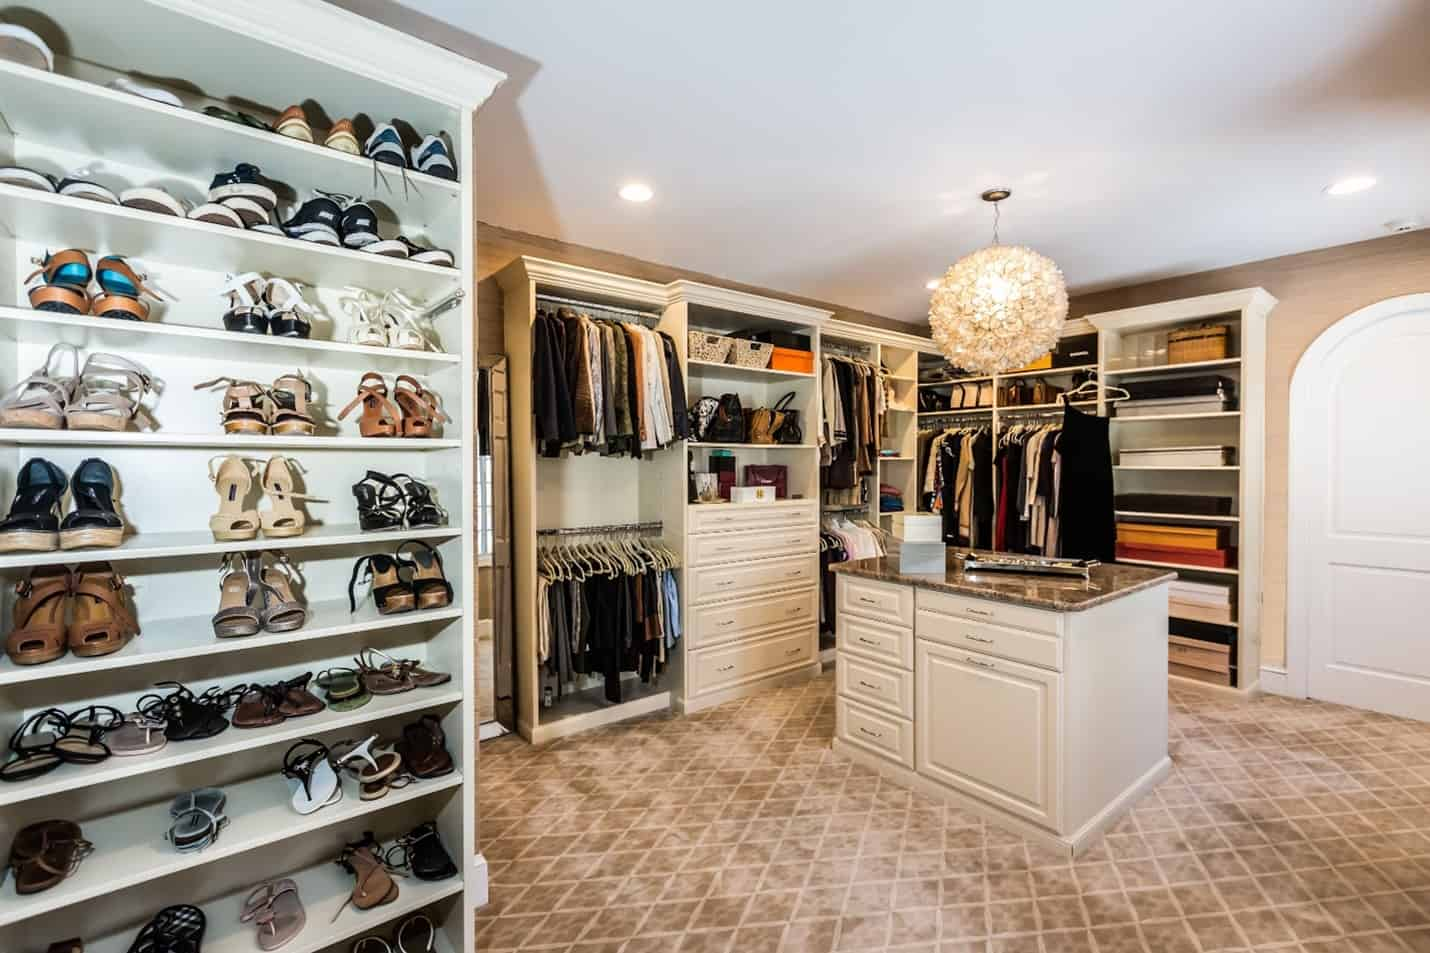 A grand walk-in closet with a shoe rack and island.